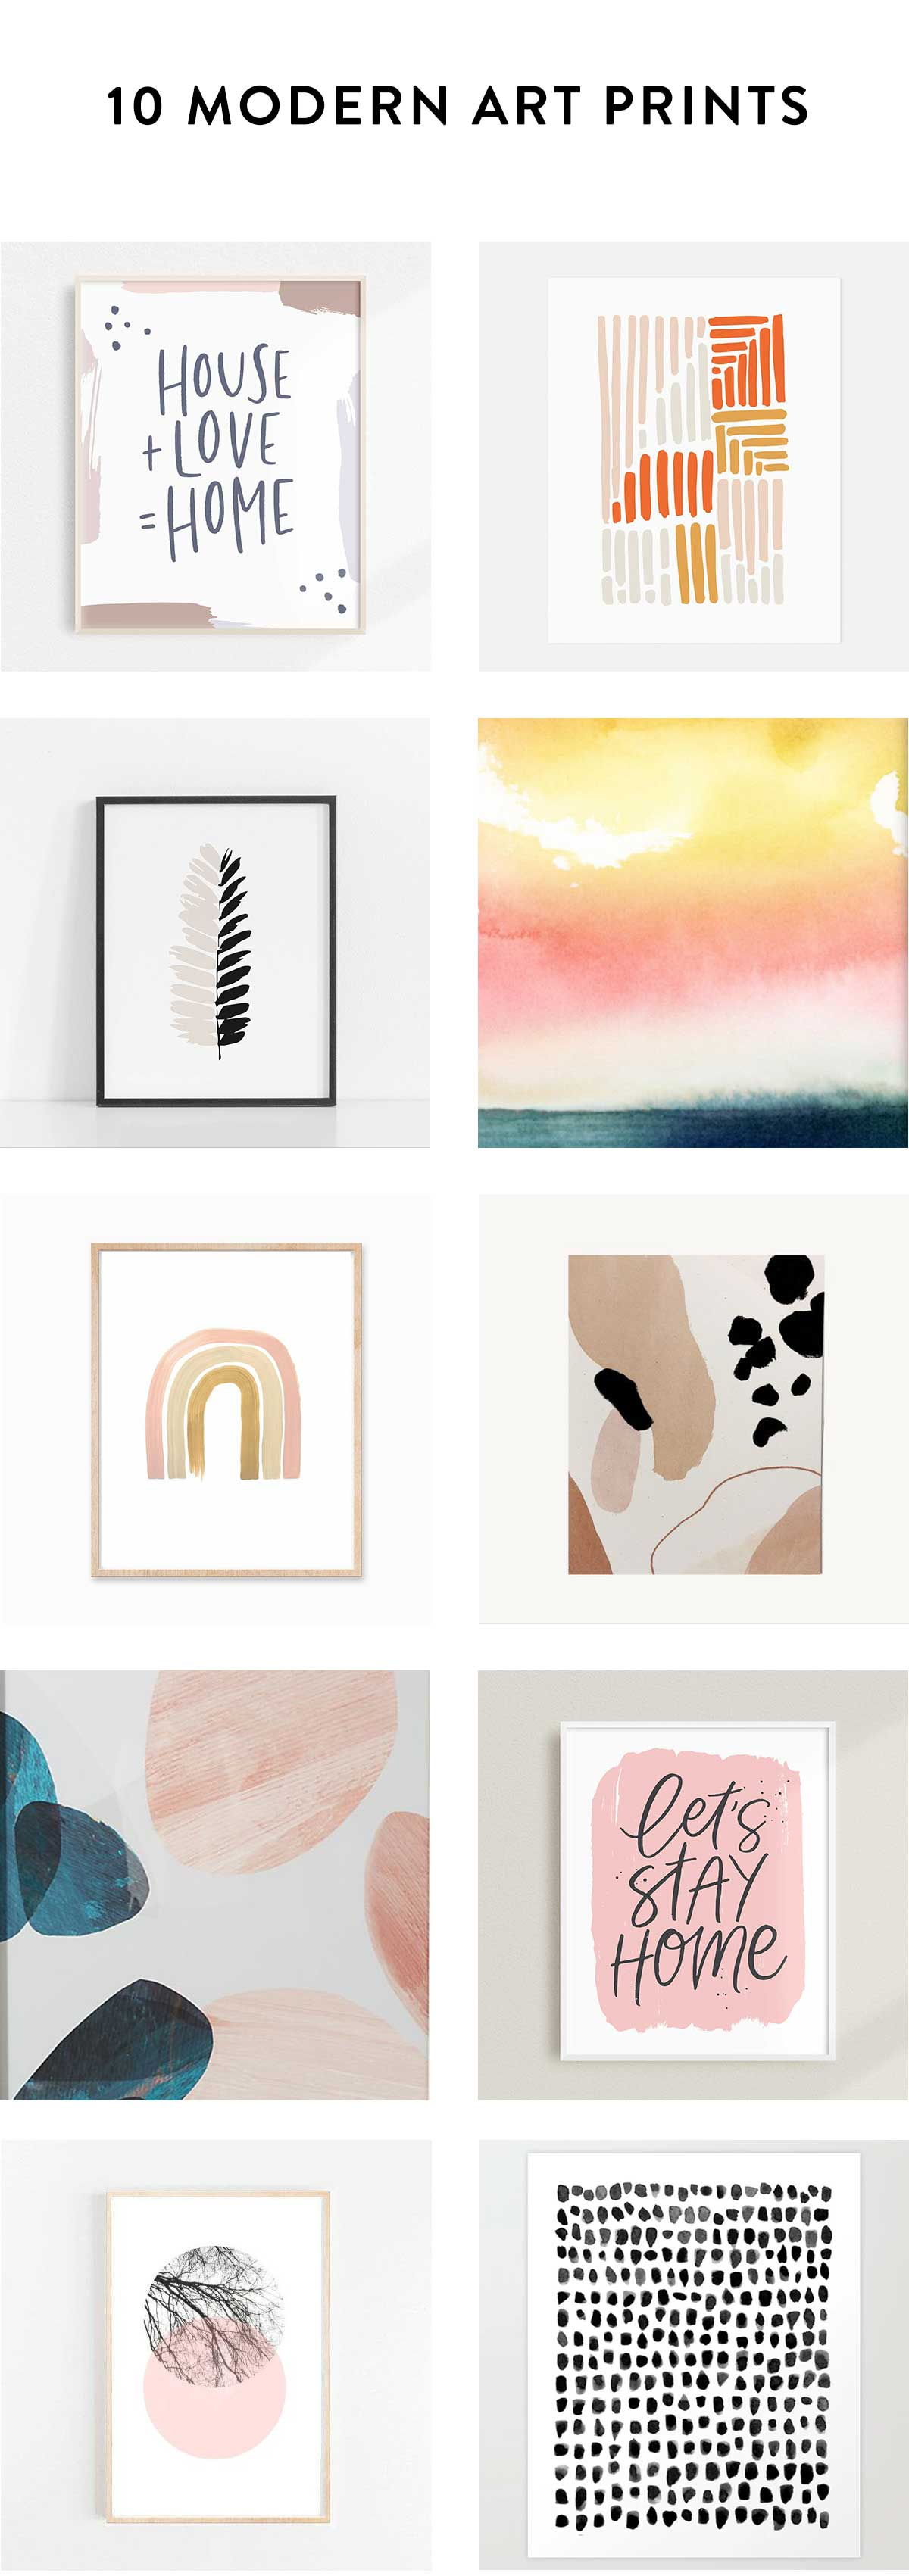 10 modern art prints for your living room walls